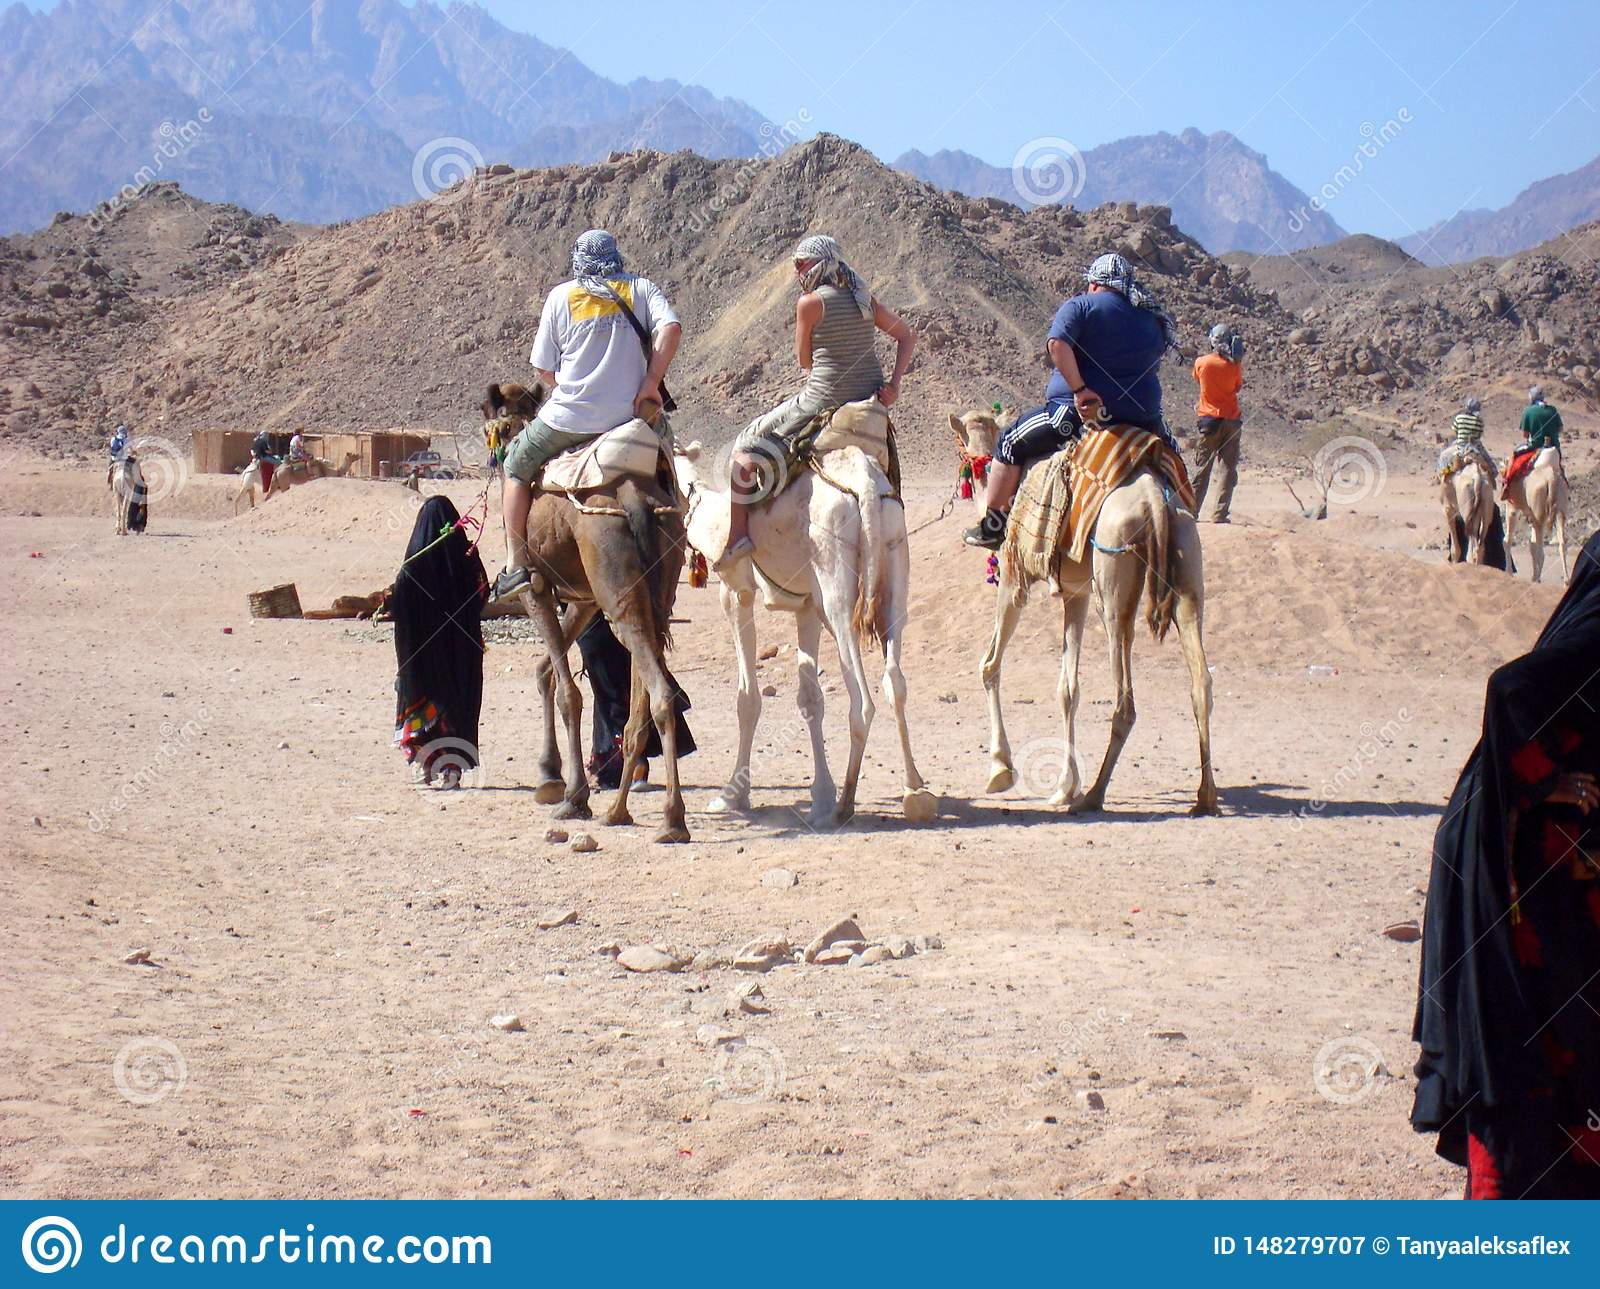 Three tourists ride on camels accompanied by a guide.